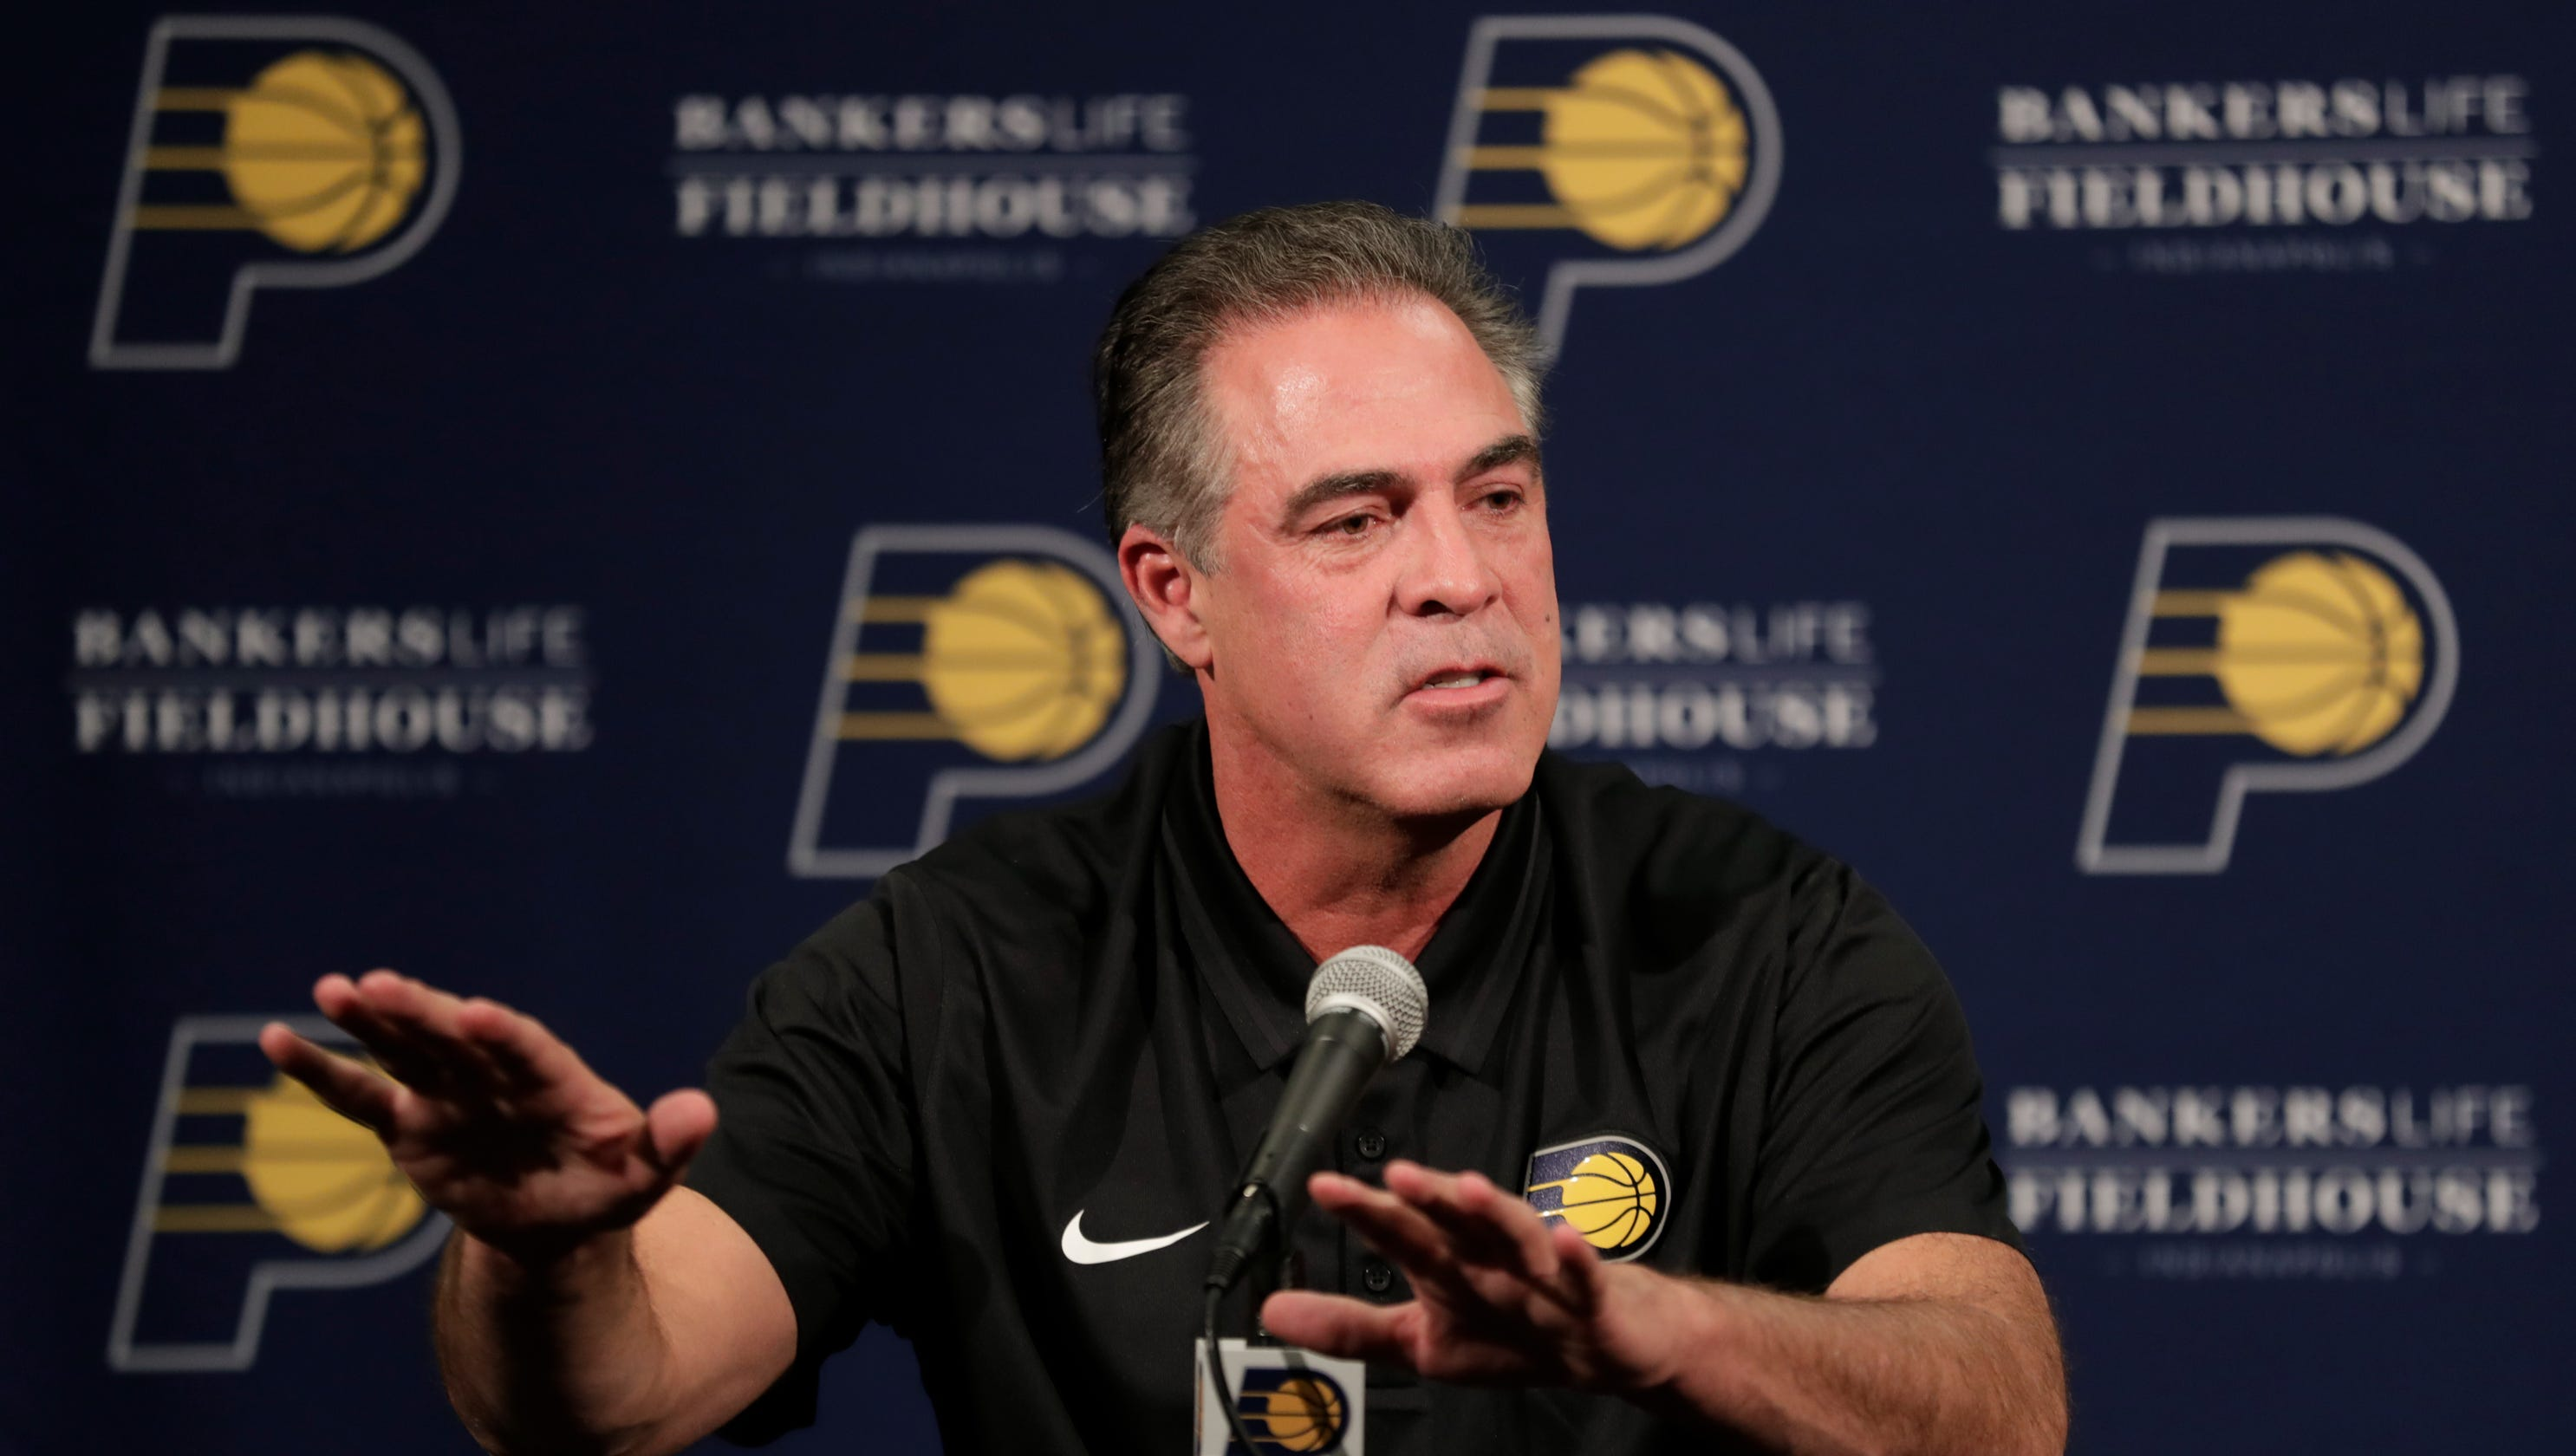 Pacers' Kevin Pritchard: 'There had to be some changes. I take full responsibility'